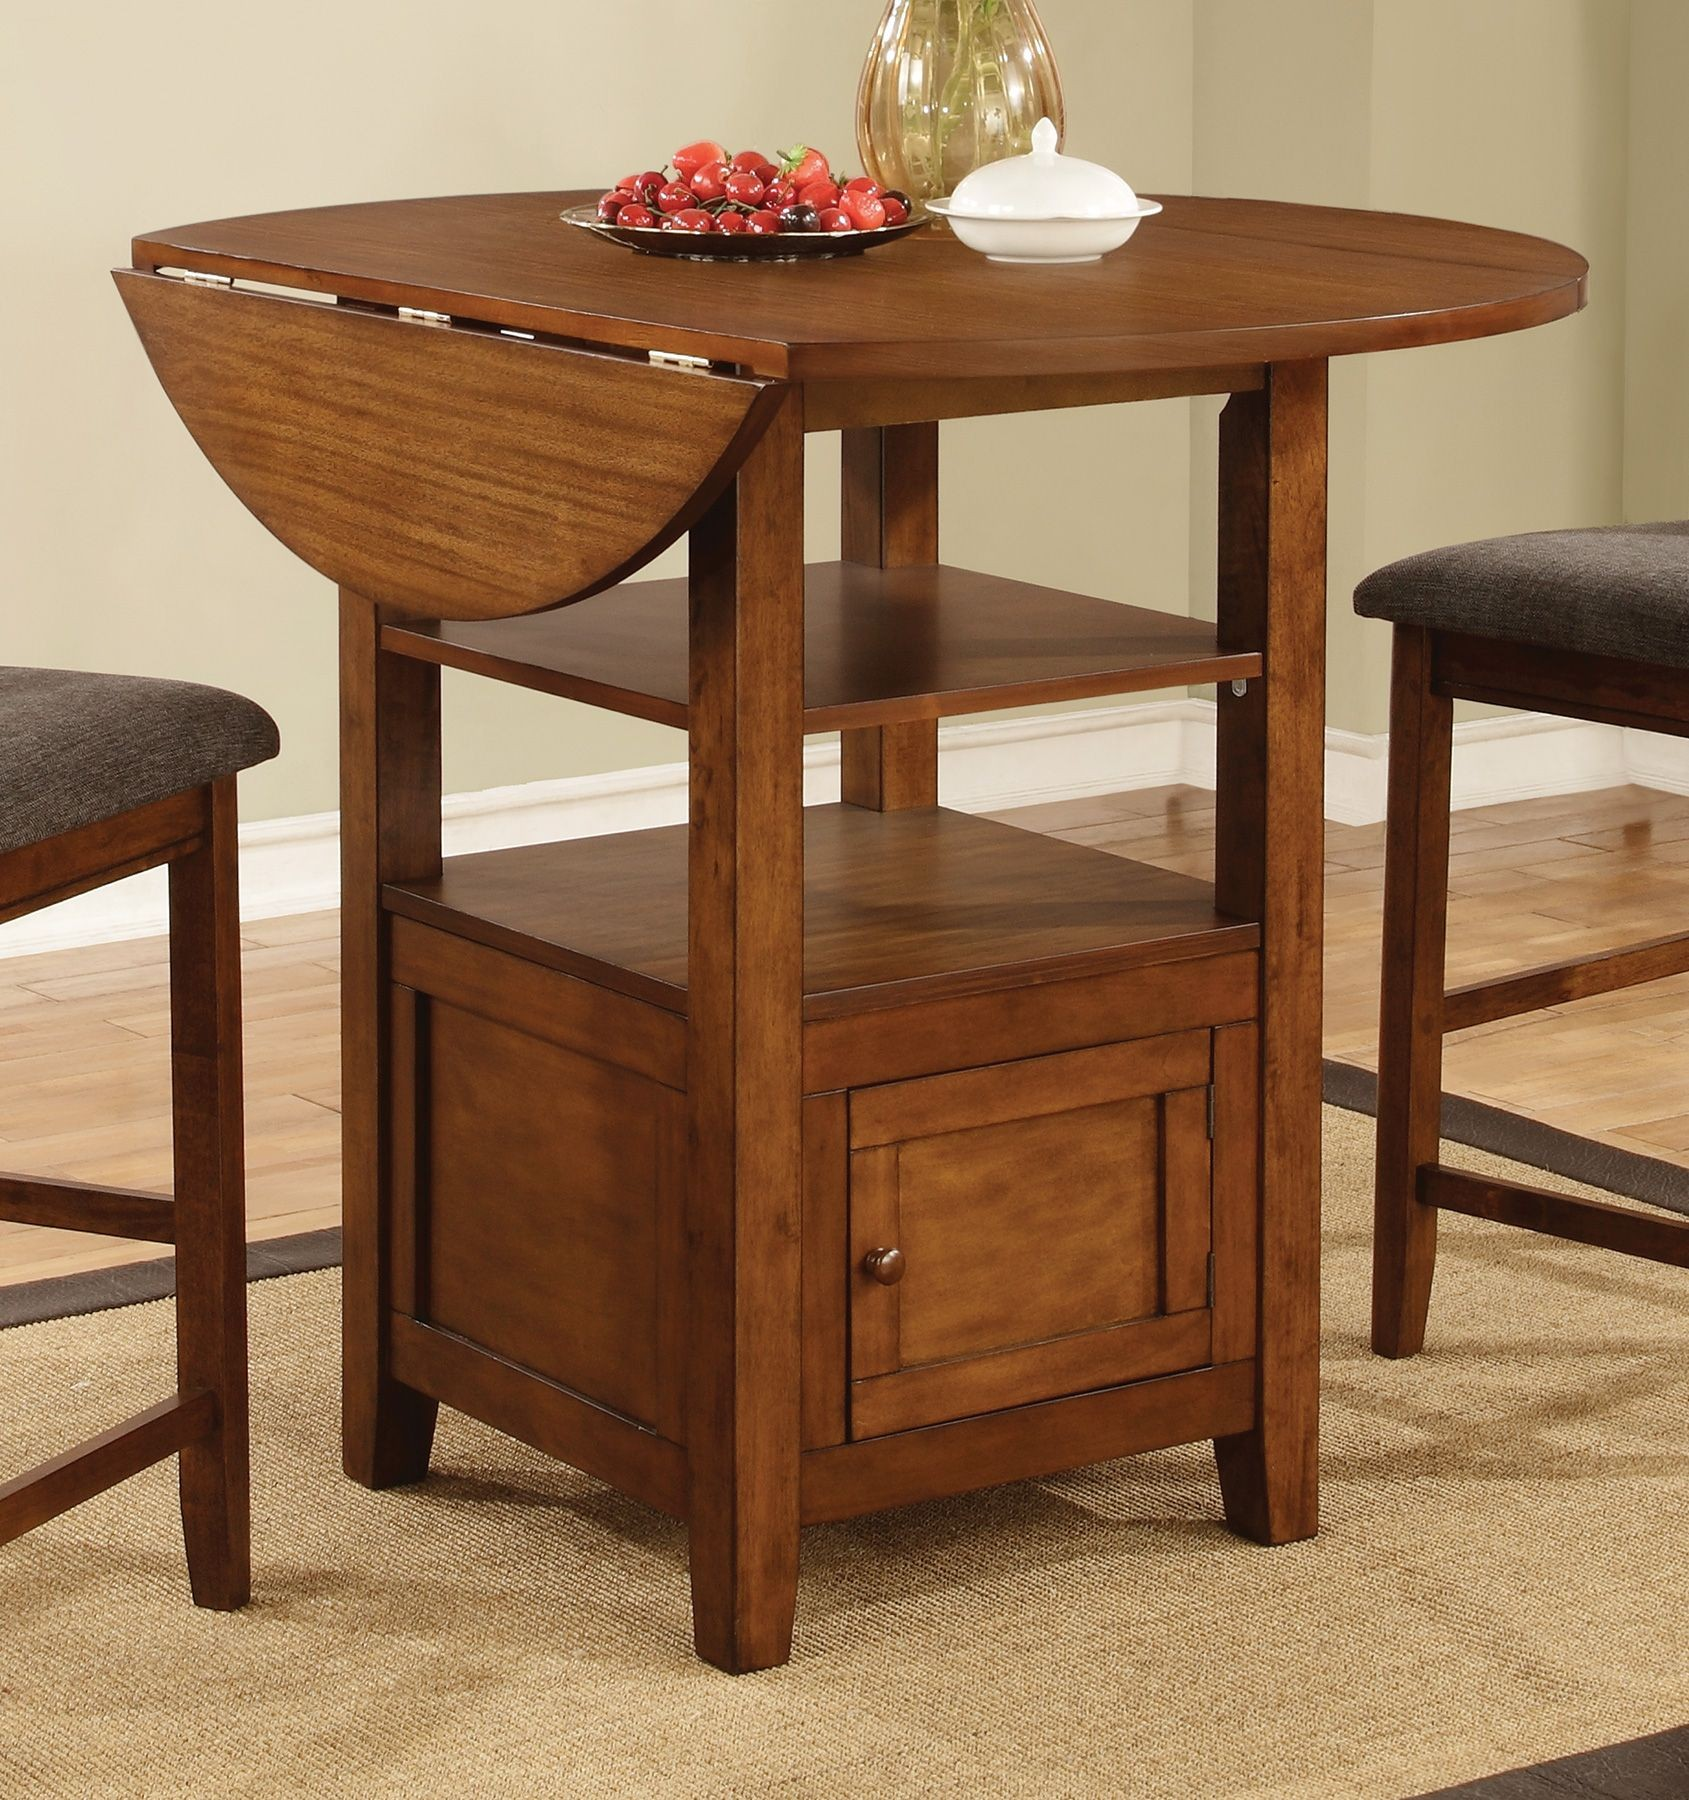 stockton warm brown drop leaf round counter height dining table from coaster 105408 coleman. Black Bedroom Furniture Sets. Home Design Ideas